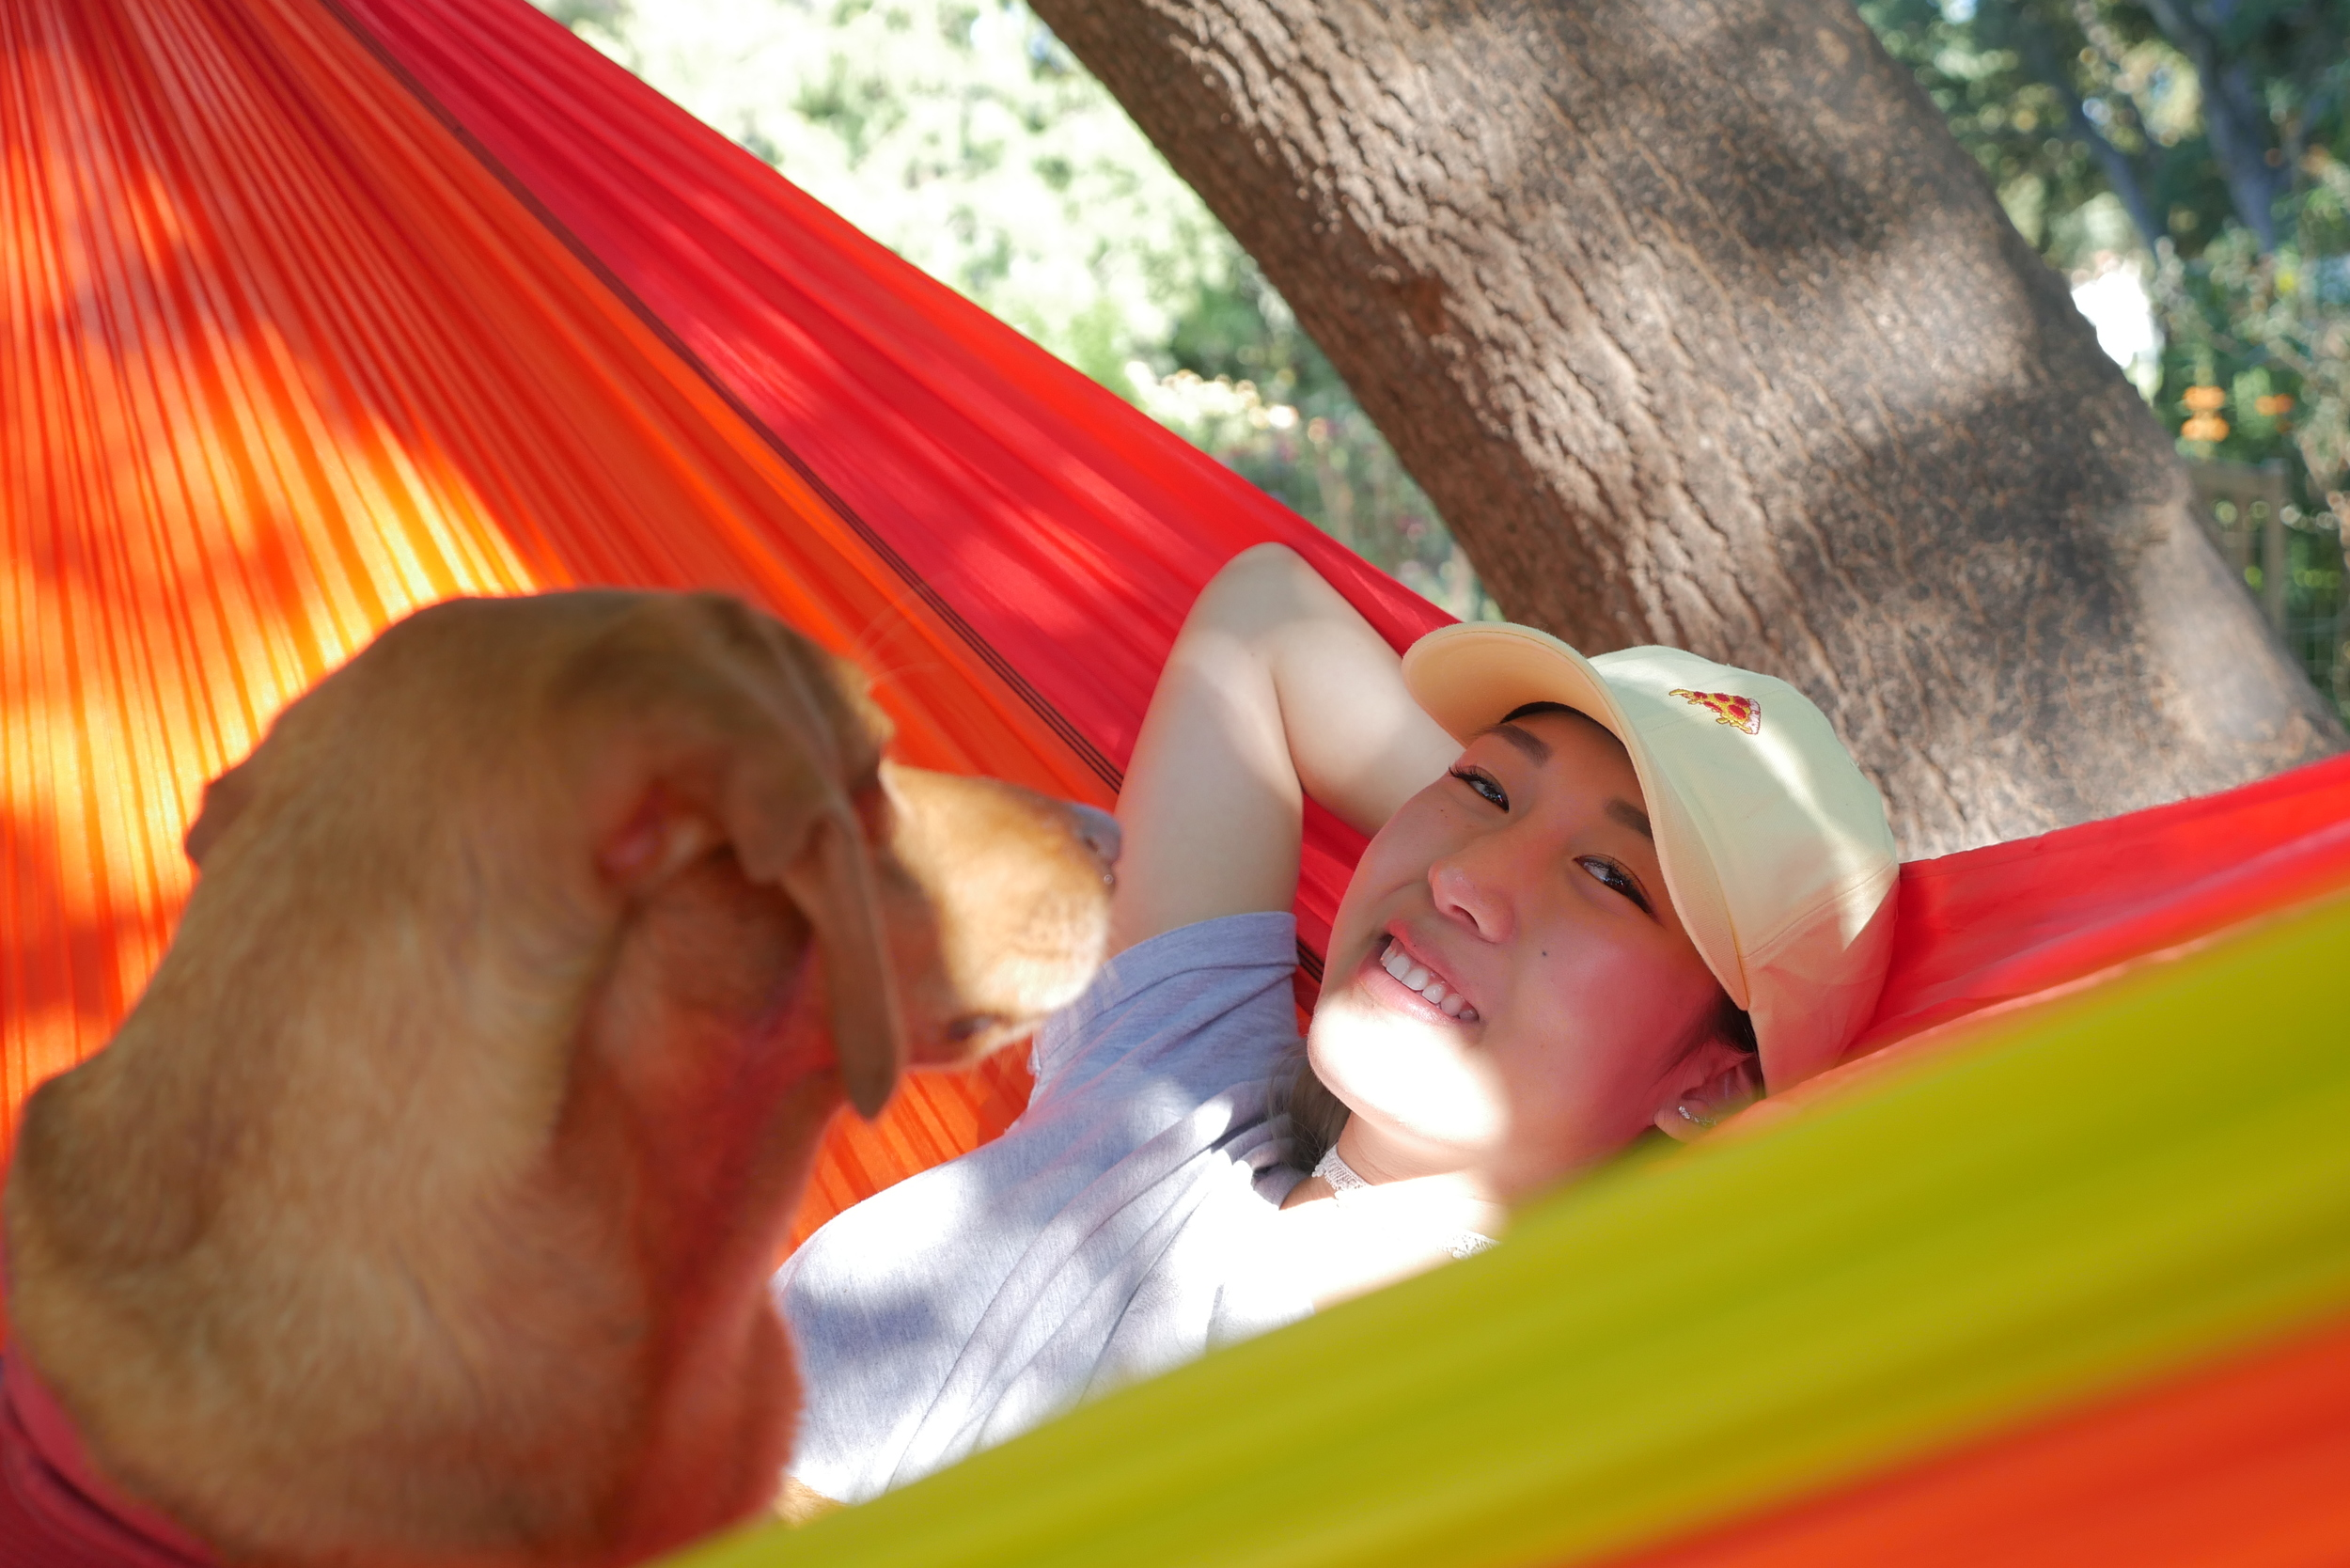 Anna Lee hanging out on Eno Sunshine Hammock @ www.hobo.life